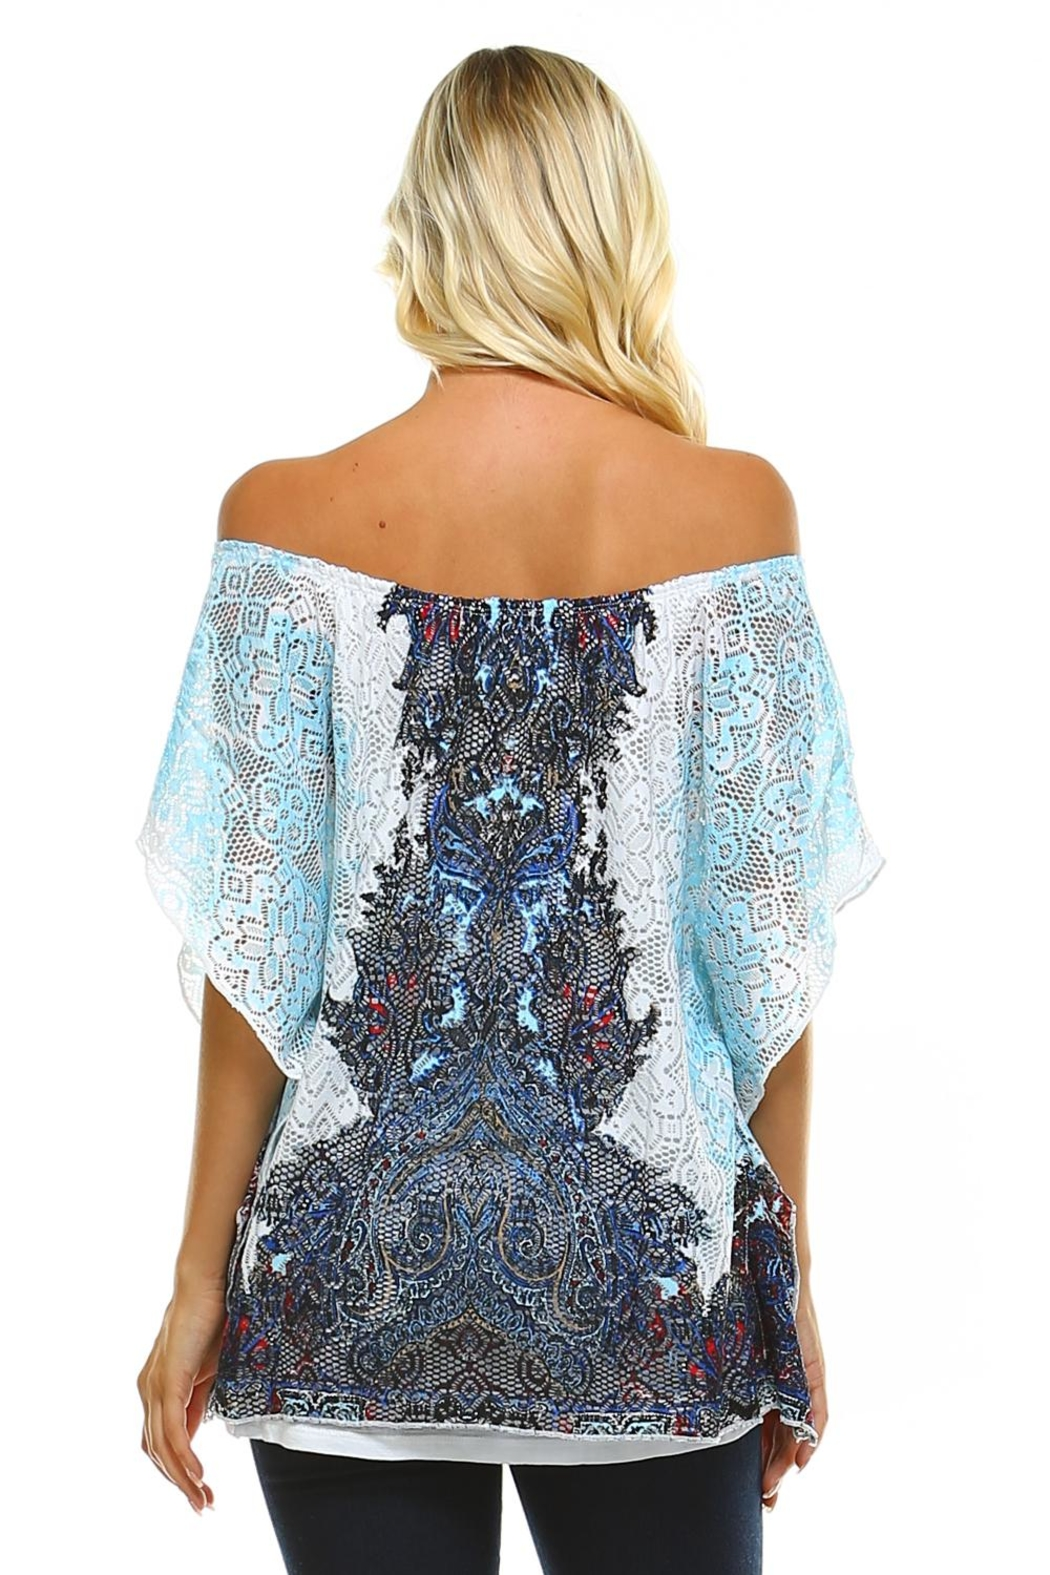 Claudia Richard Lace Dolman Top - Side Cropped Image